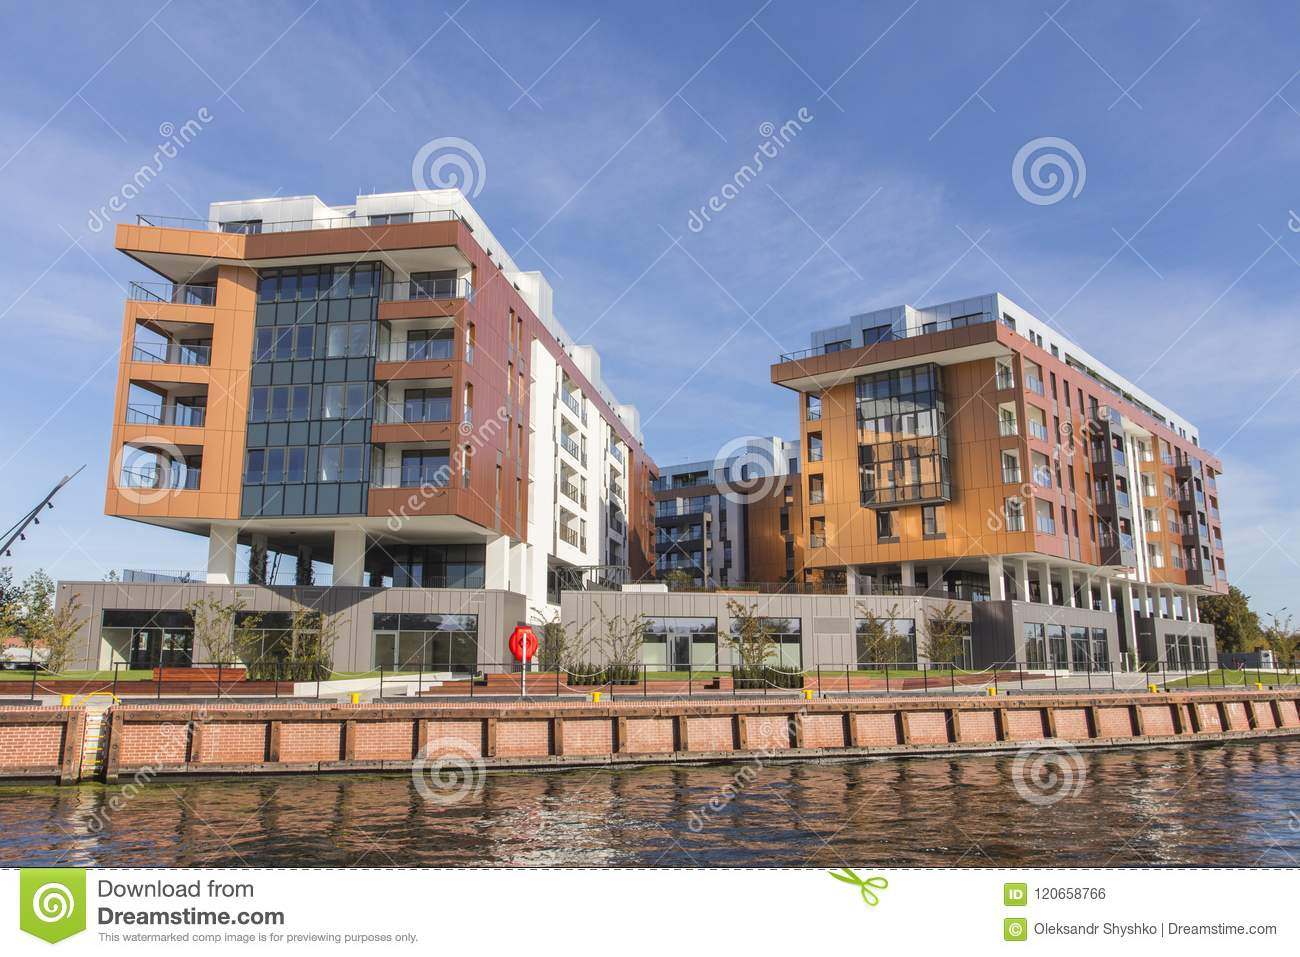 Modern residential buildings on the banks of the river in Gdansk. Poland